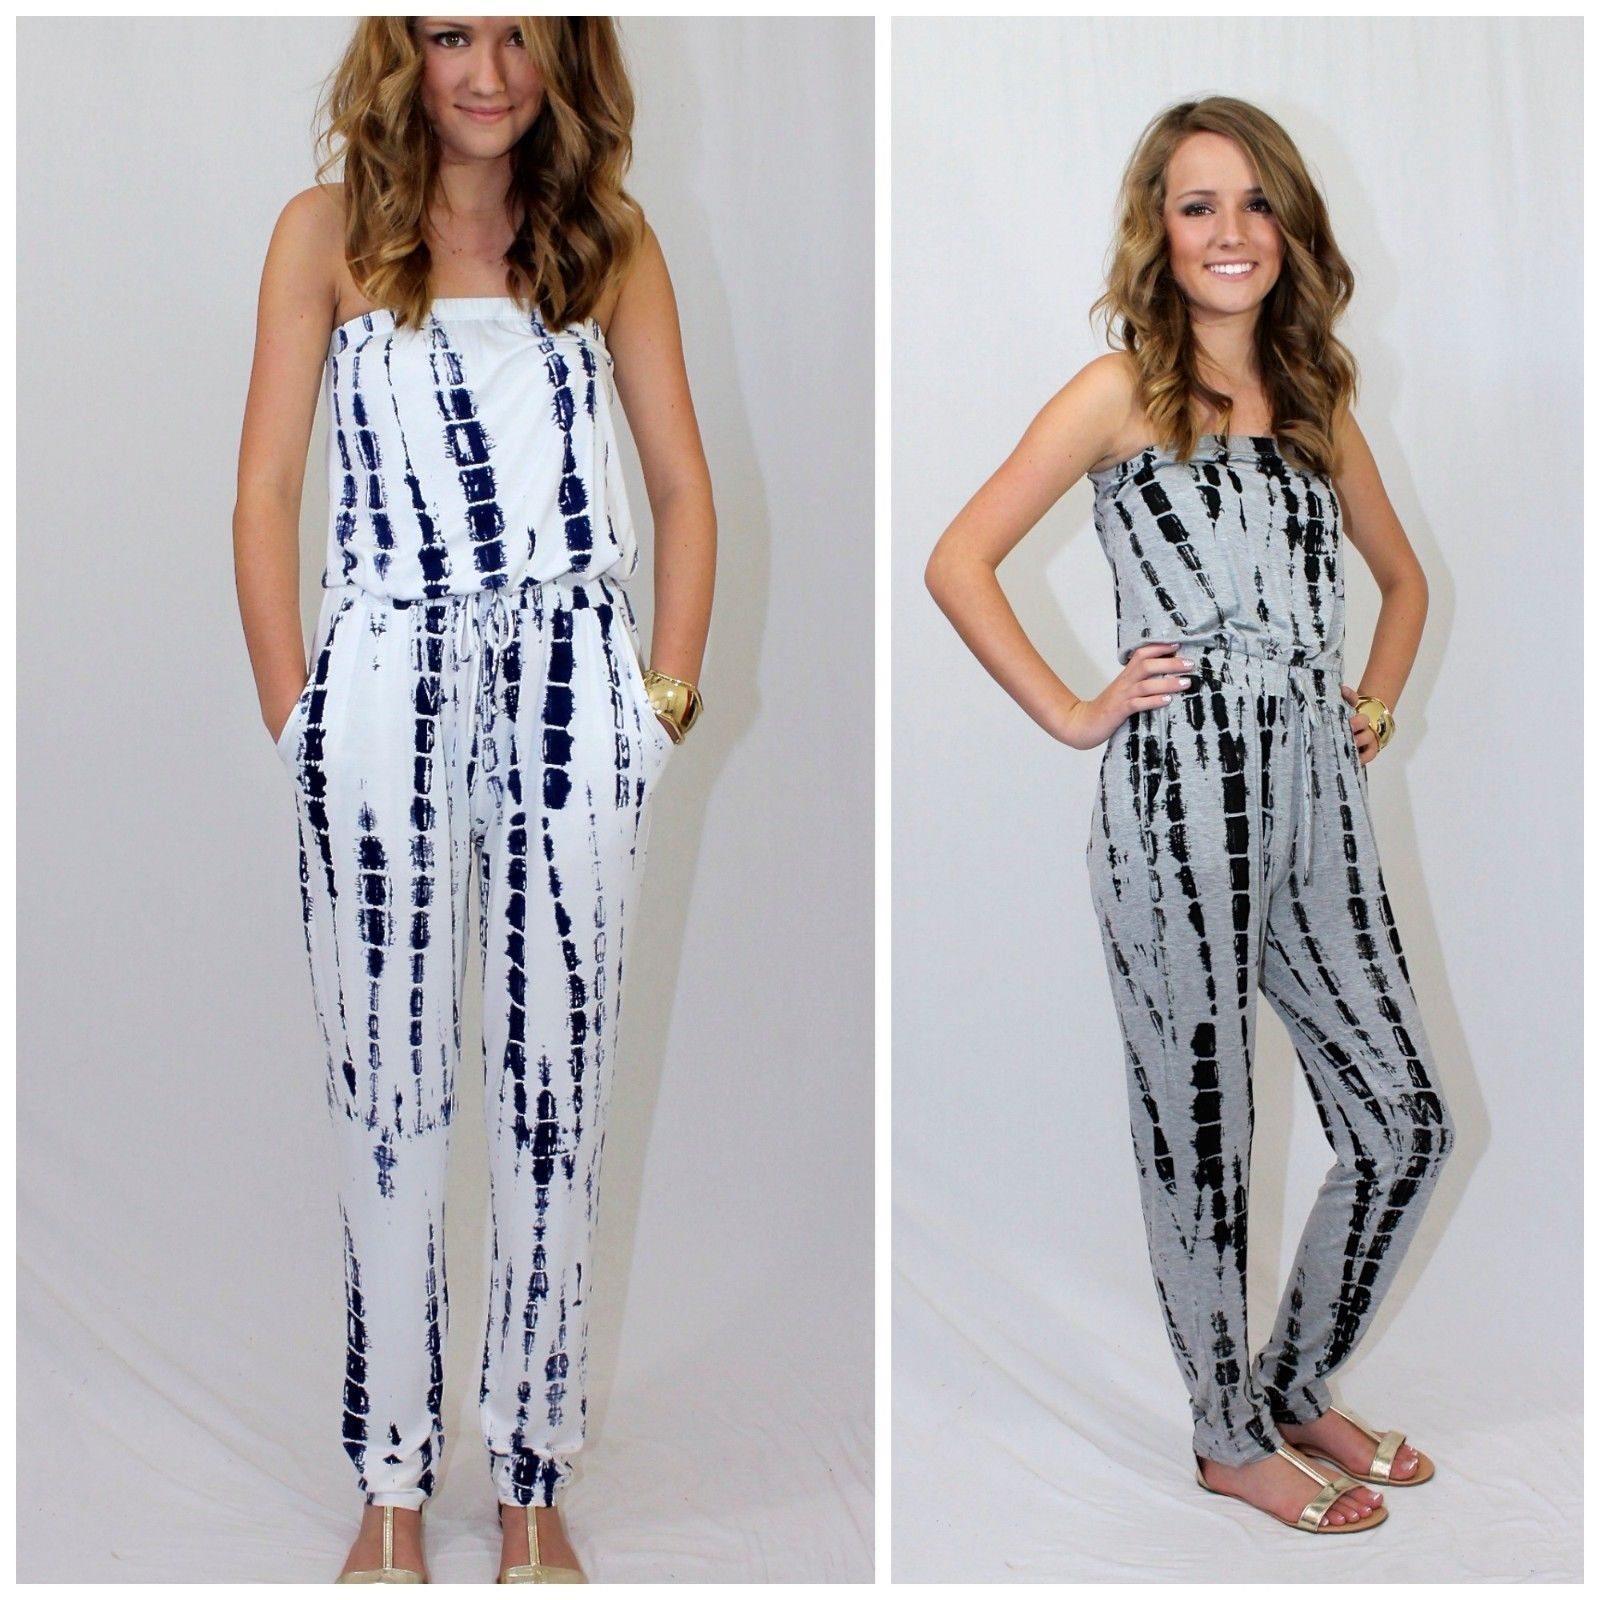 301462fb6bc6 Boho Strapless Bamboo Tie Dyed Jumpsuit Long Length Jersey Knit Wasabi Mint  USA